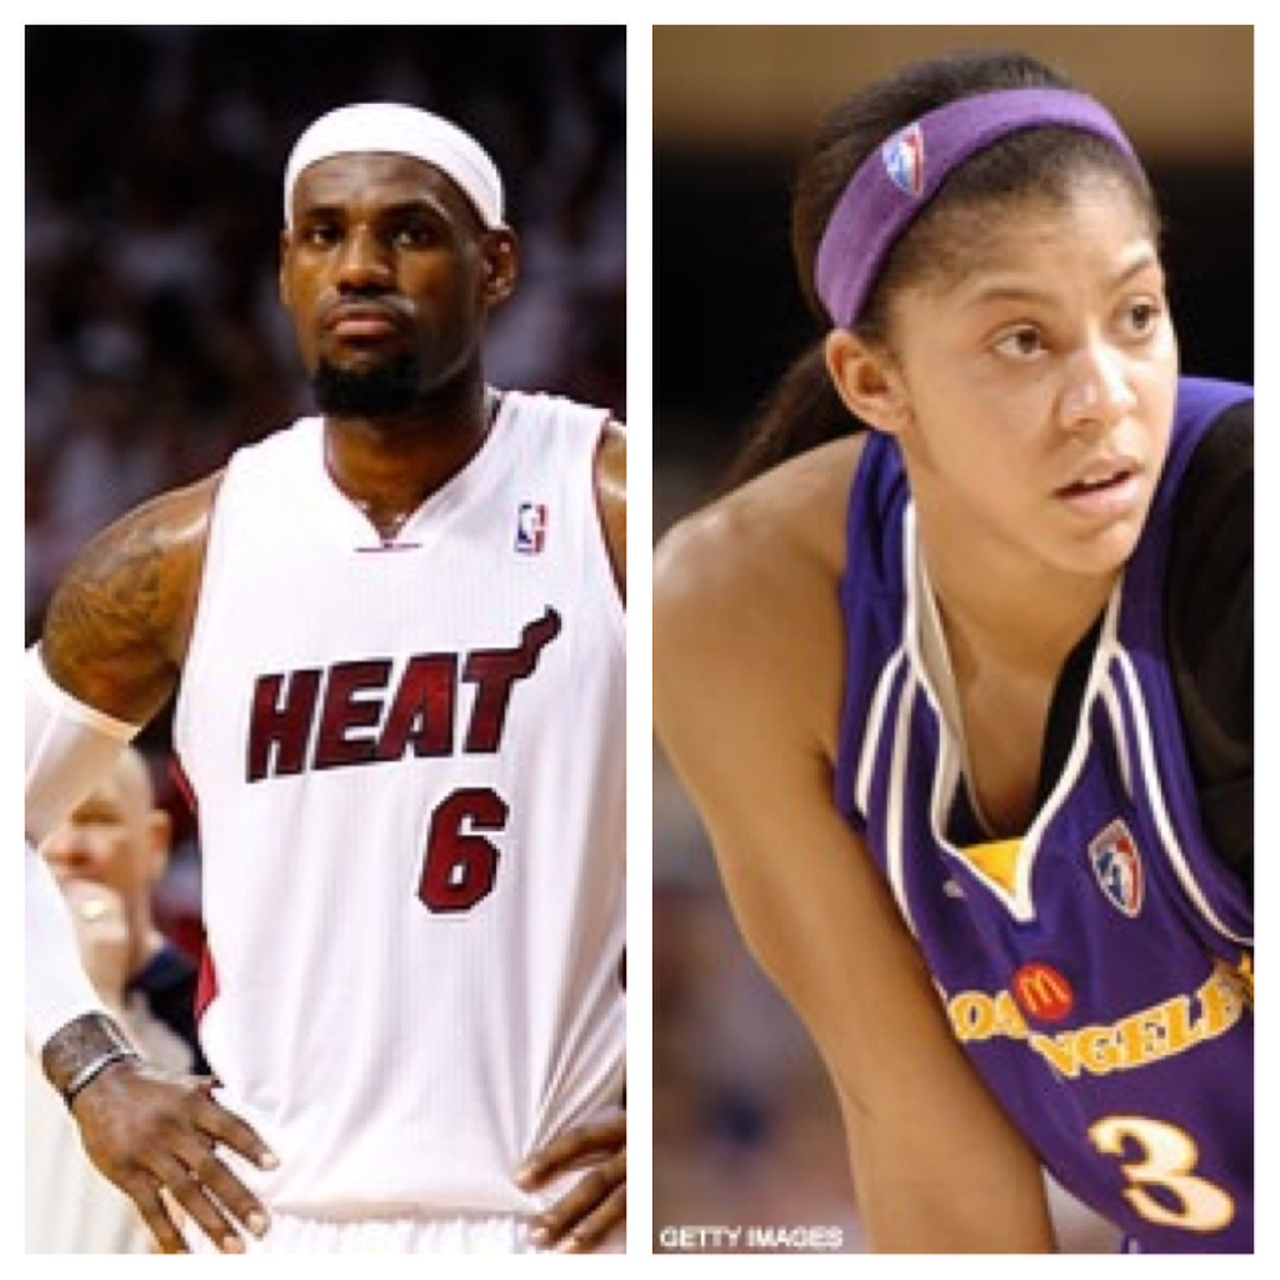 wnba vs nba Nba team would obviously crush but how much would they win by.